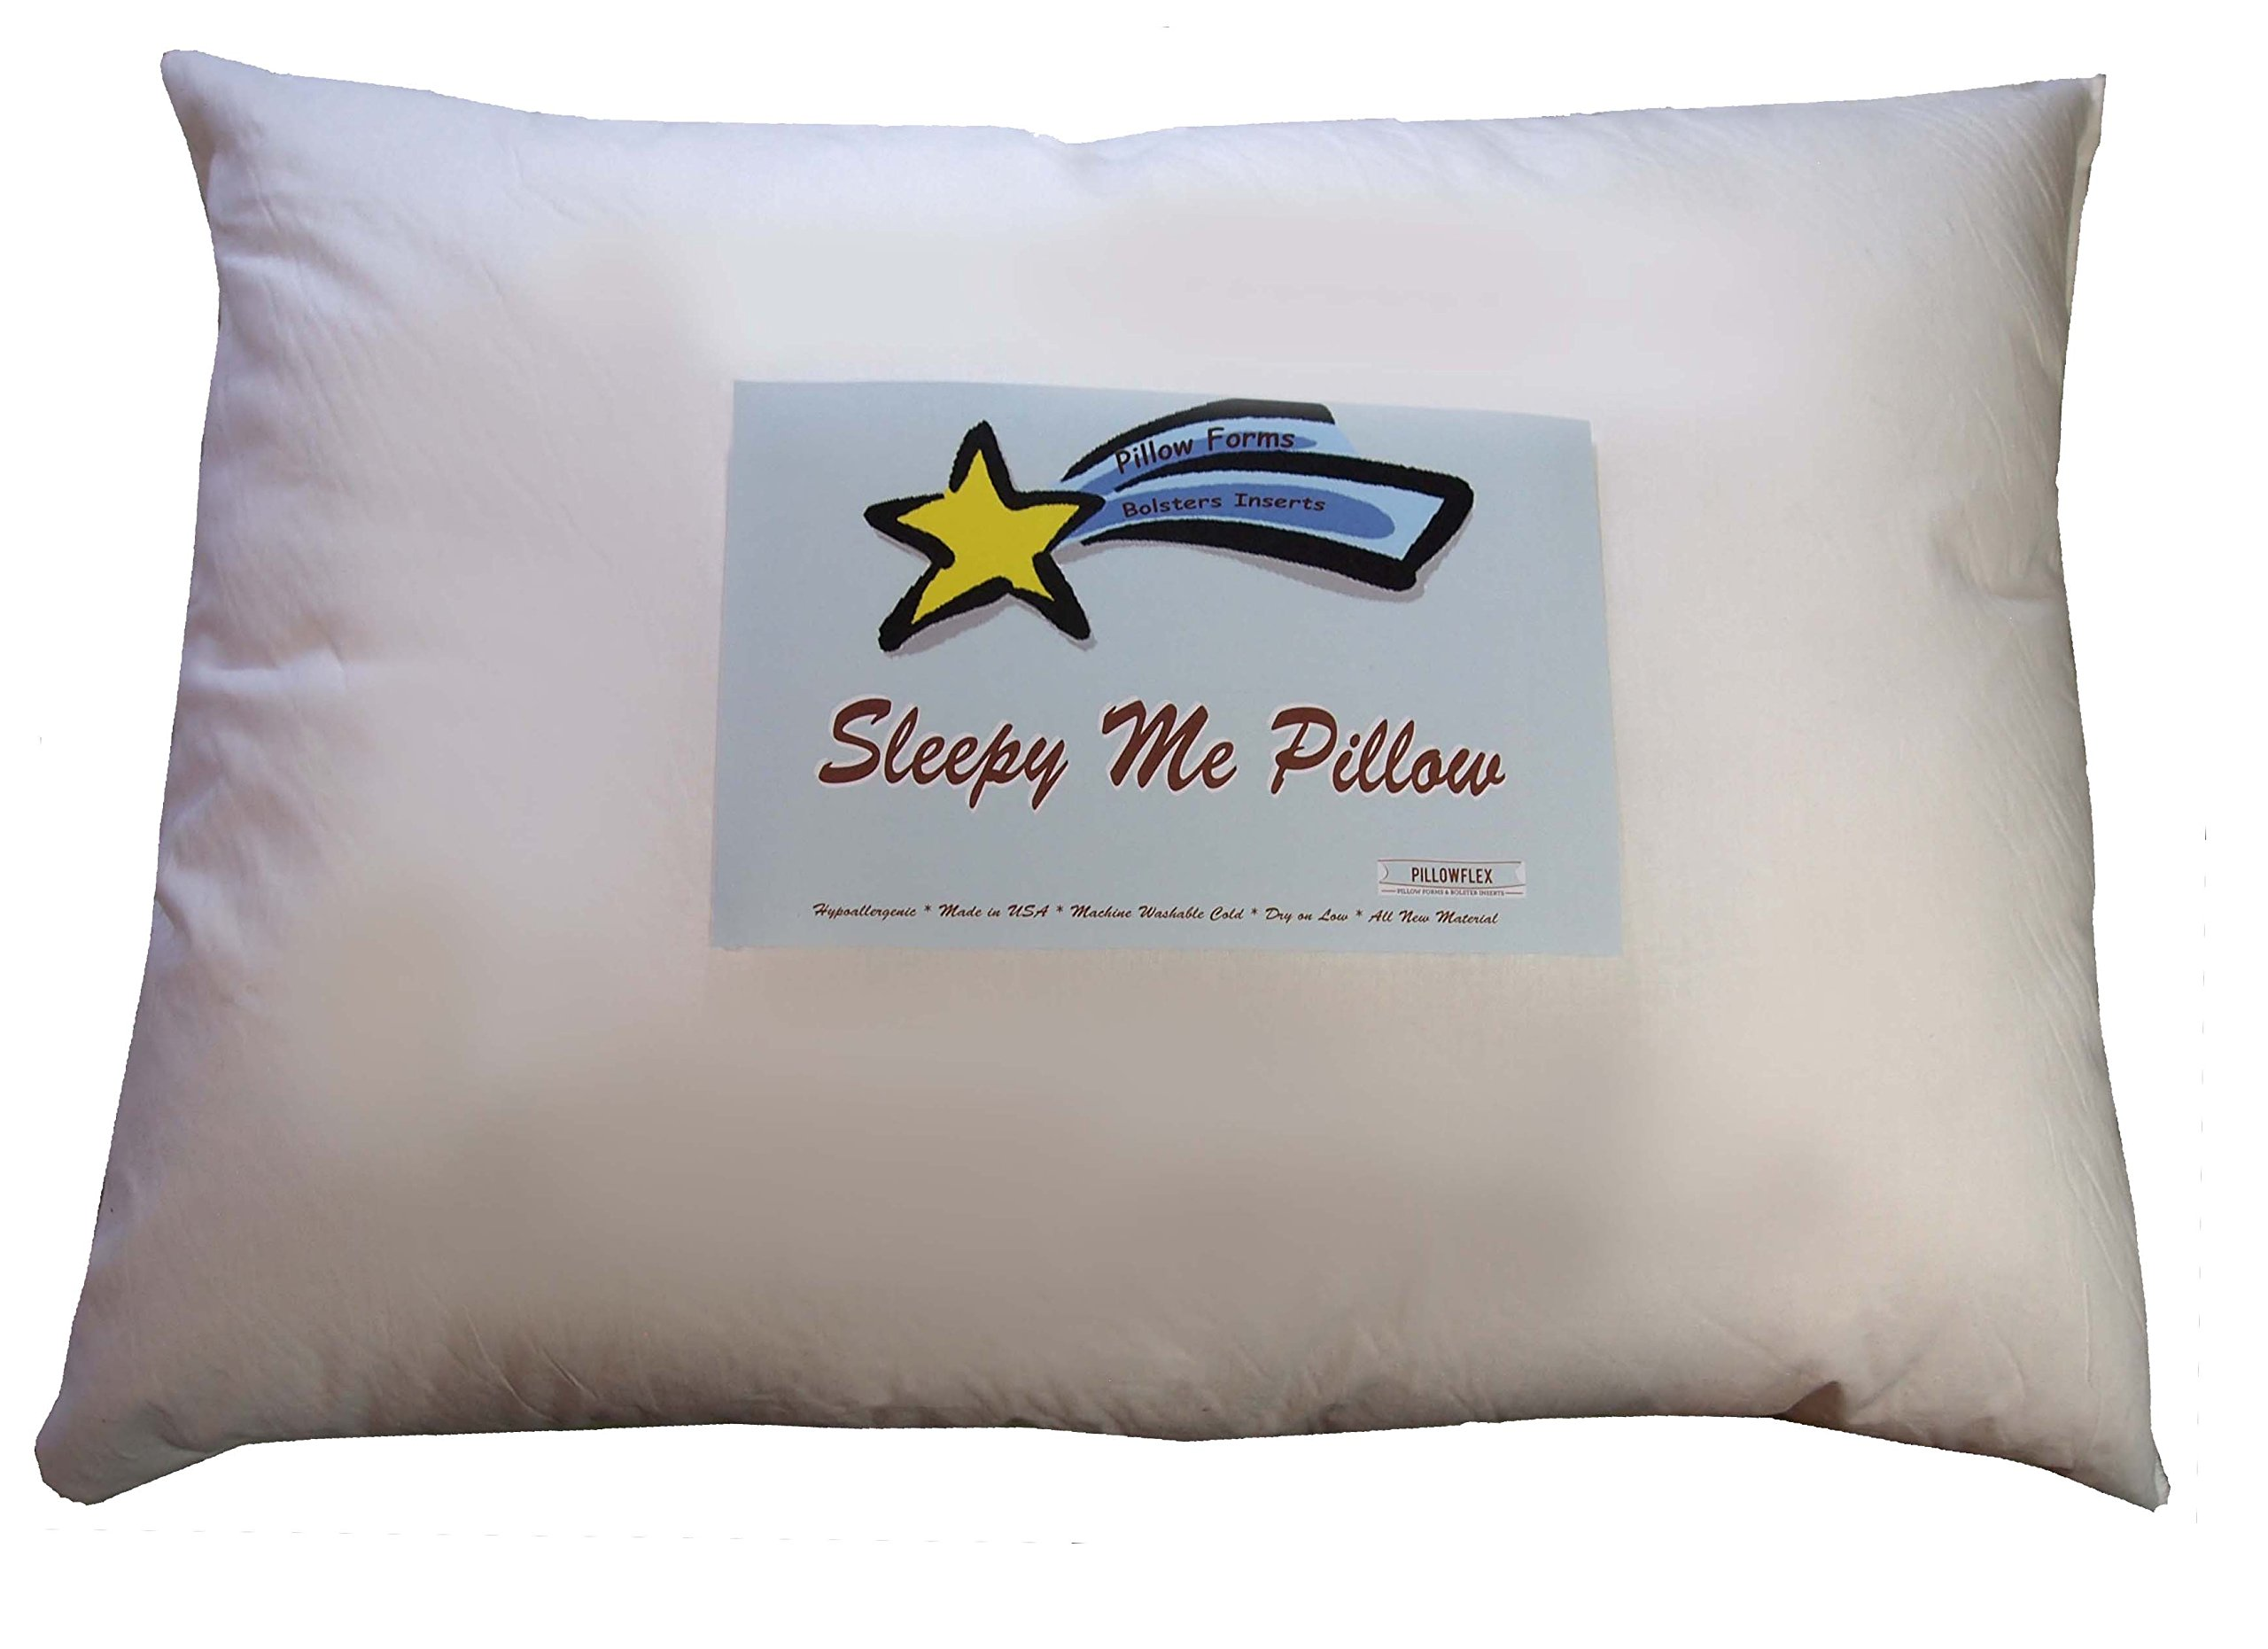 Sleepy Me 18 x 24 Inch Kids Pillow – Comfy Soft Synthetic Faux Down Alternative Allergy Free Hypoallergenic